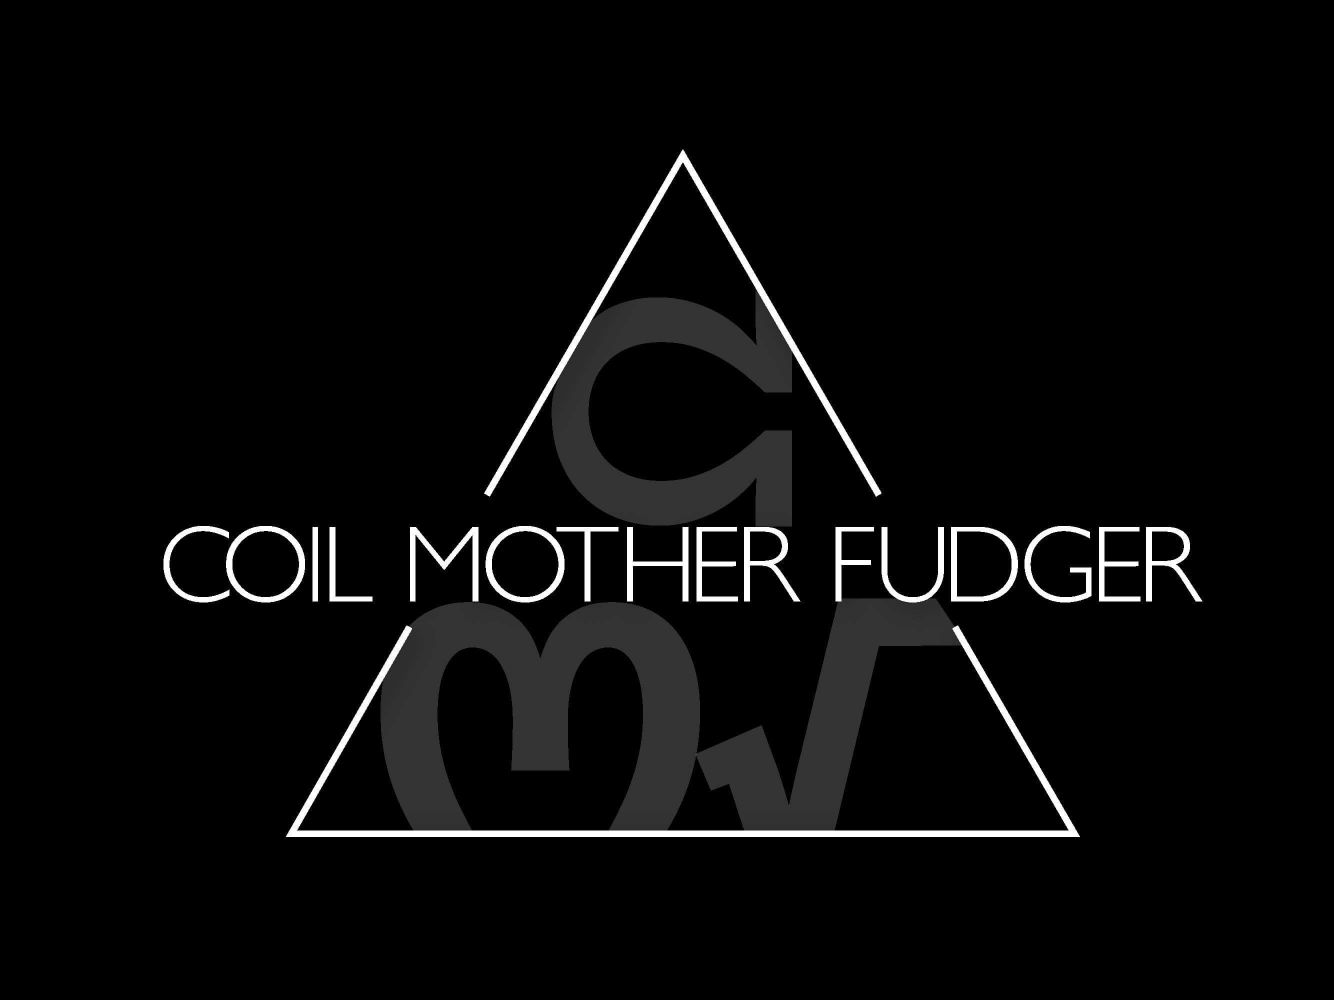 Coil Mother Fudger